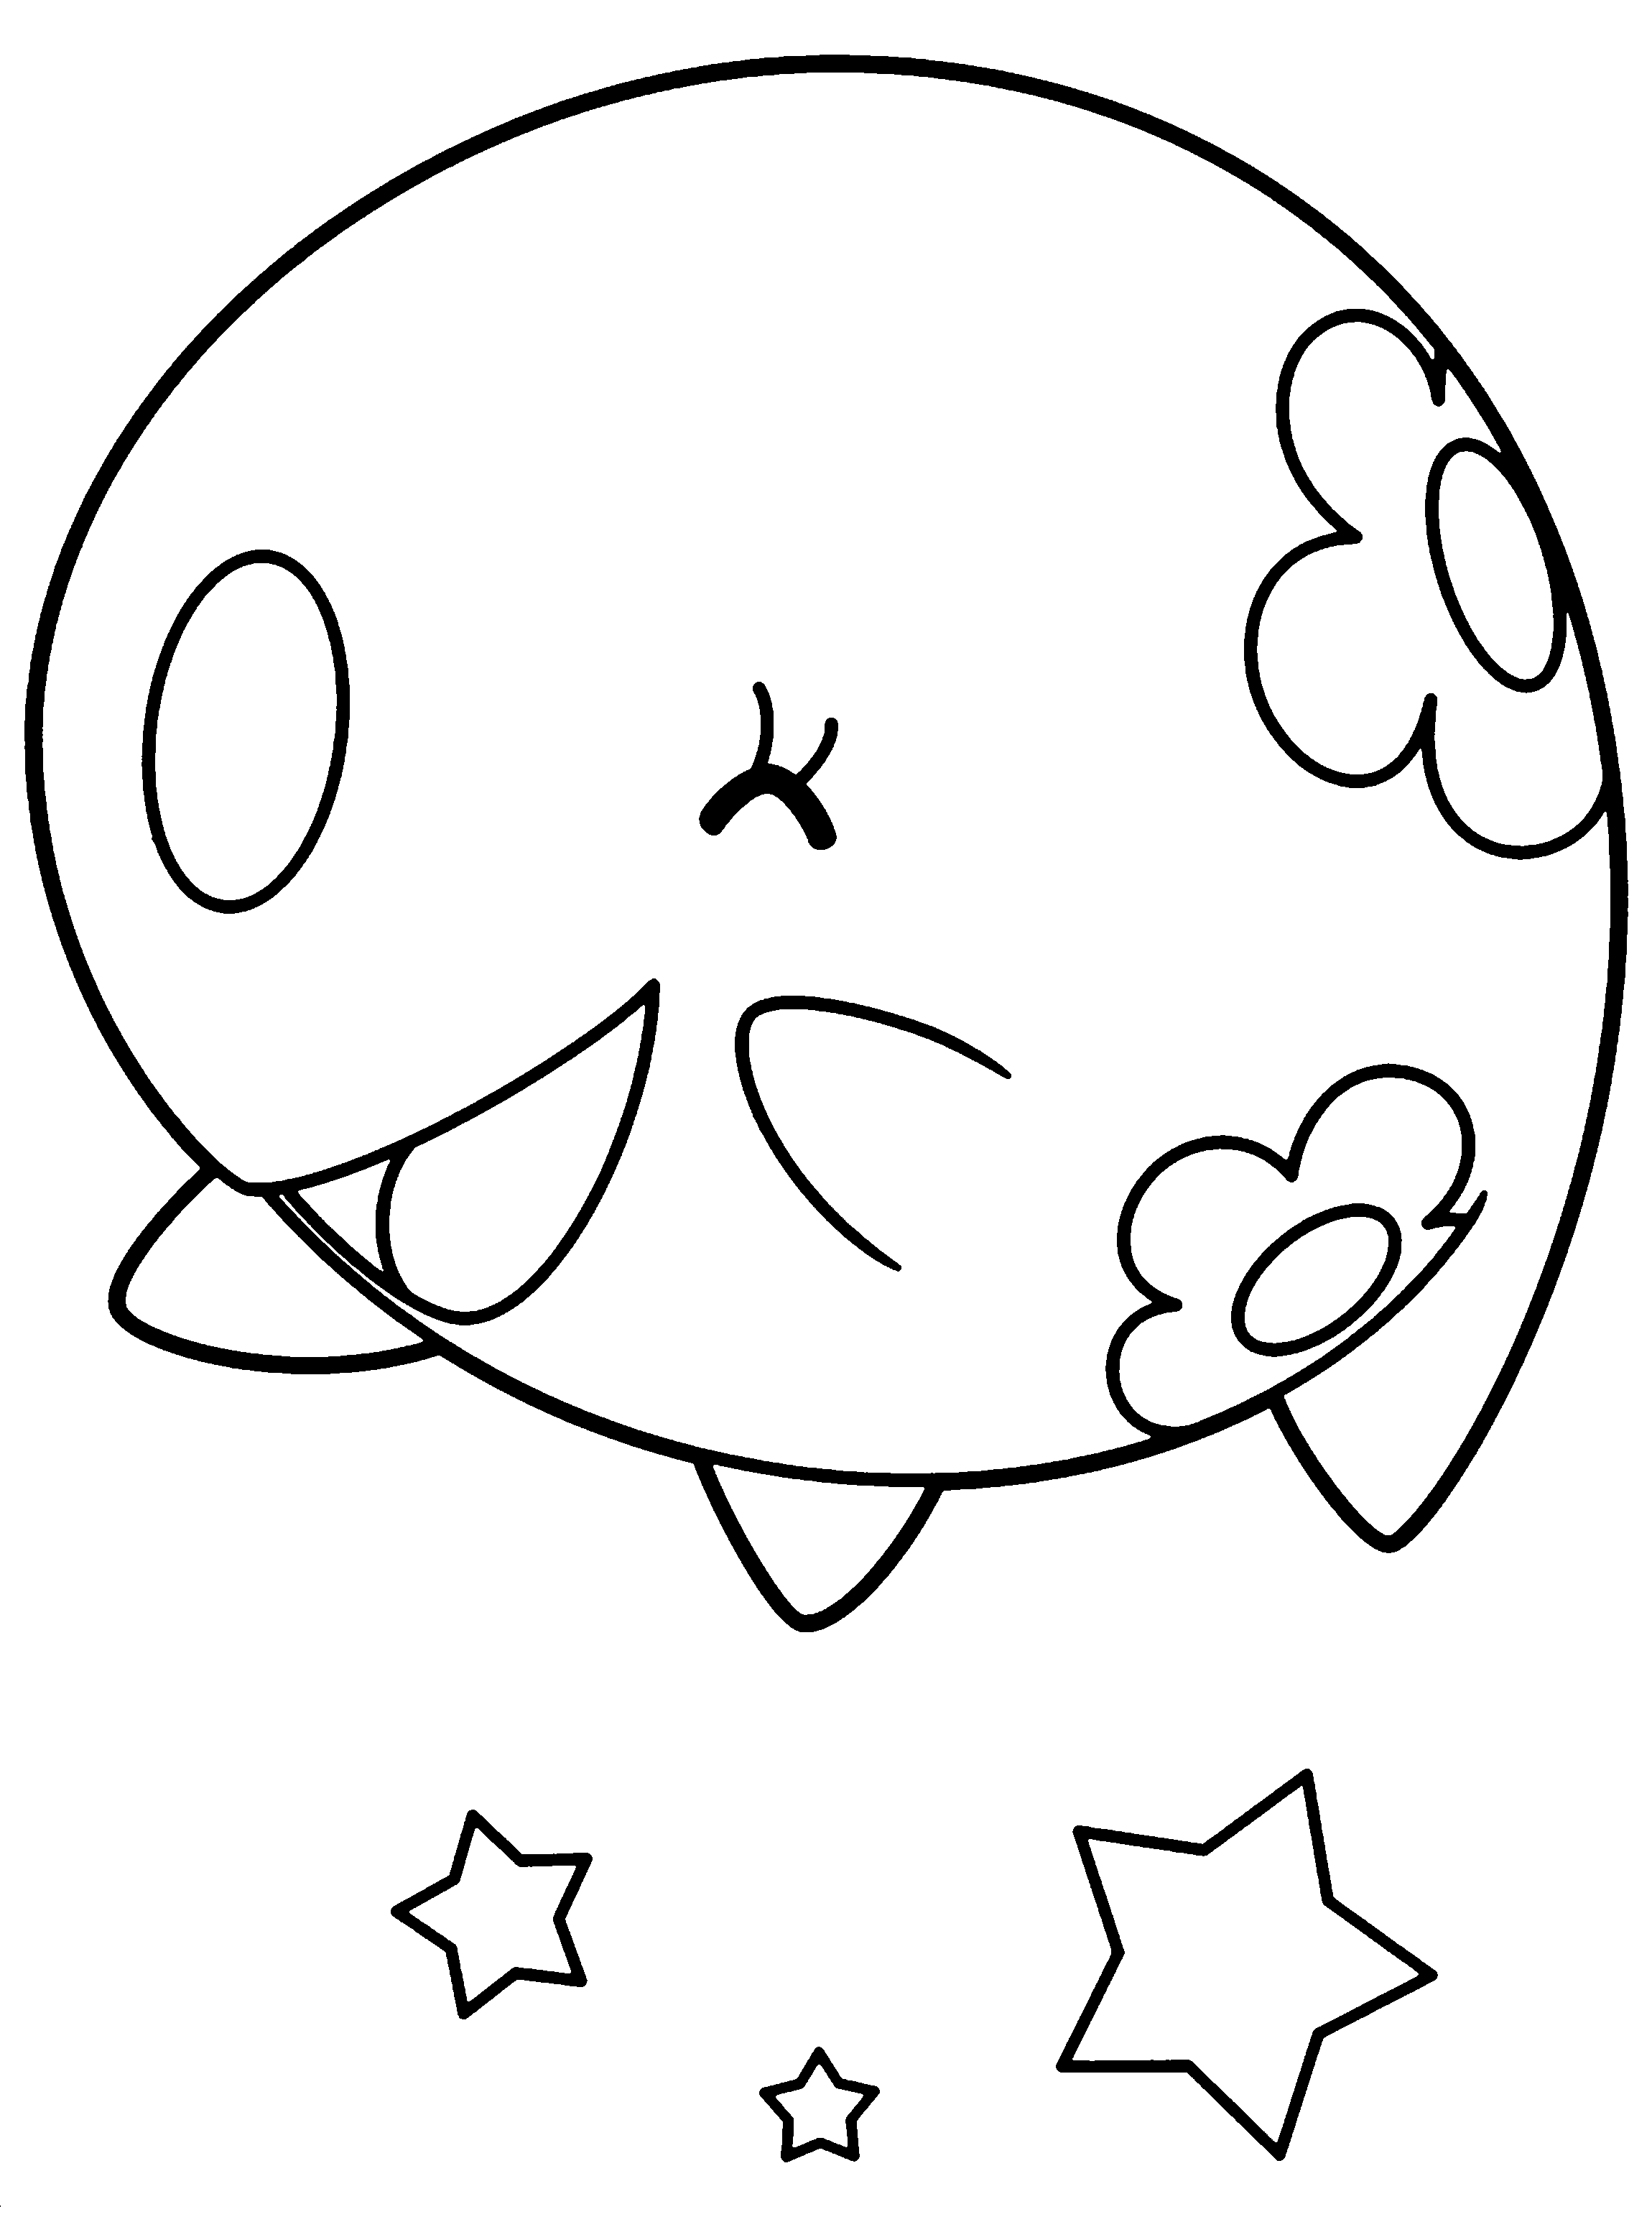 Pokemon Munna Coloring Pages Gallery